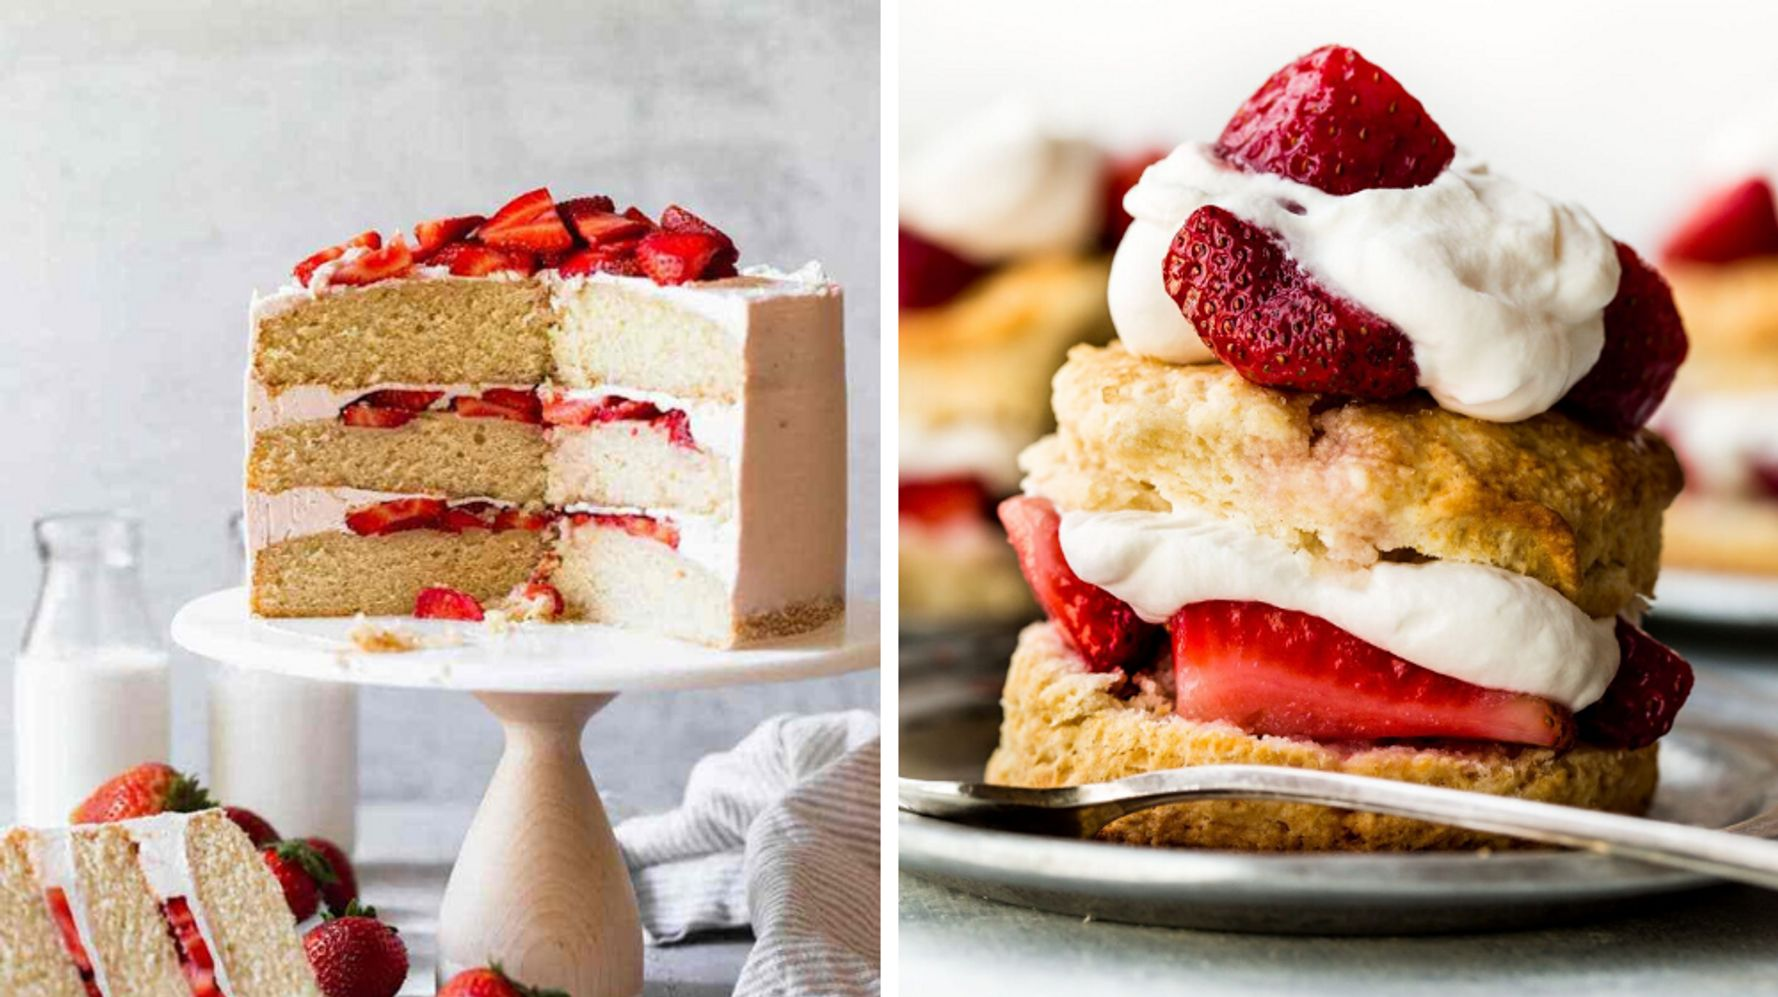 14 Reminders That You Need To Make Strawberry Shortcake Soon photo